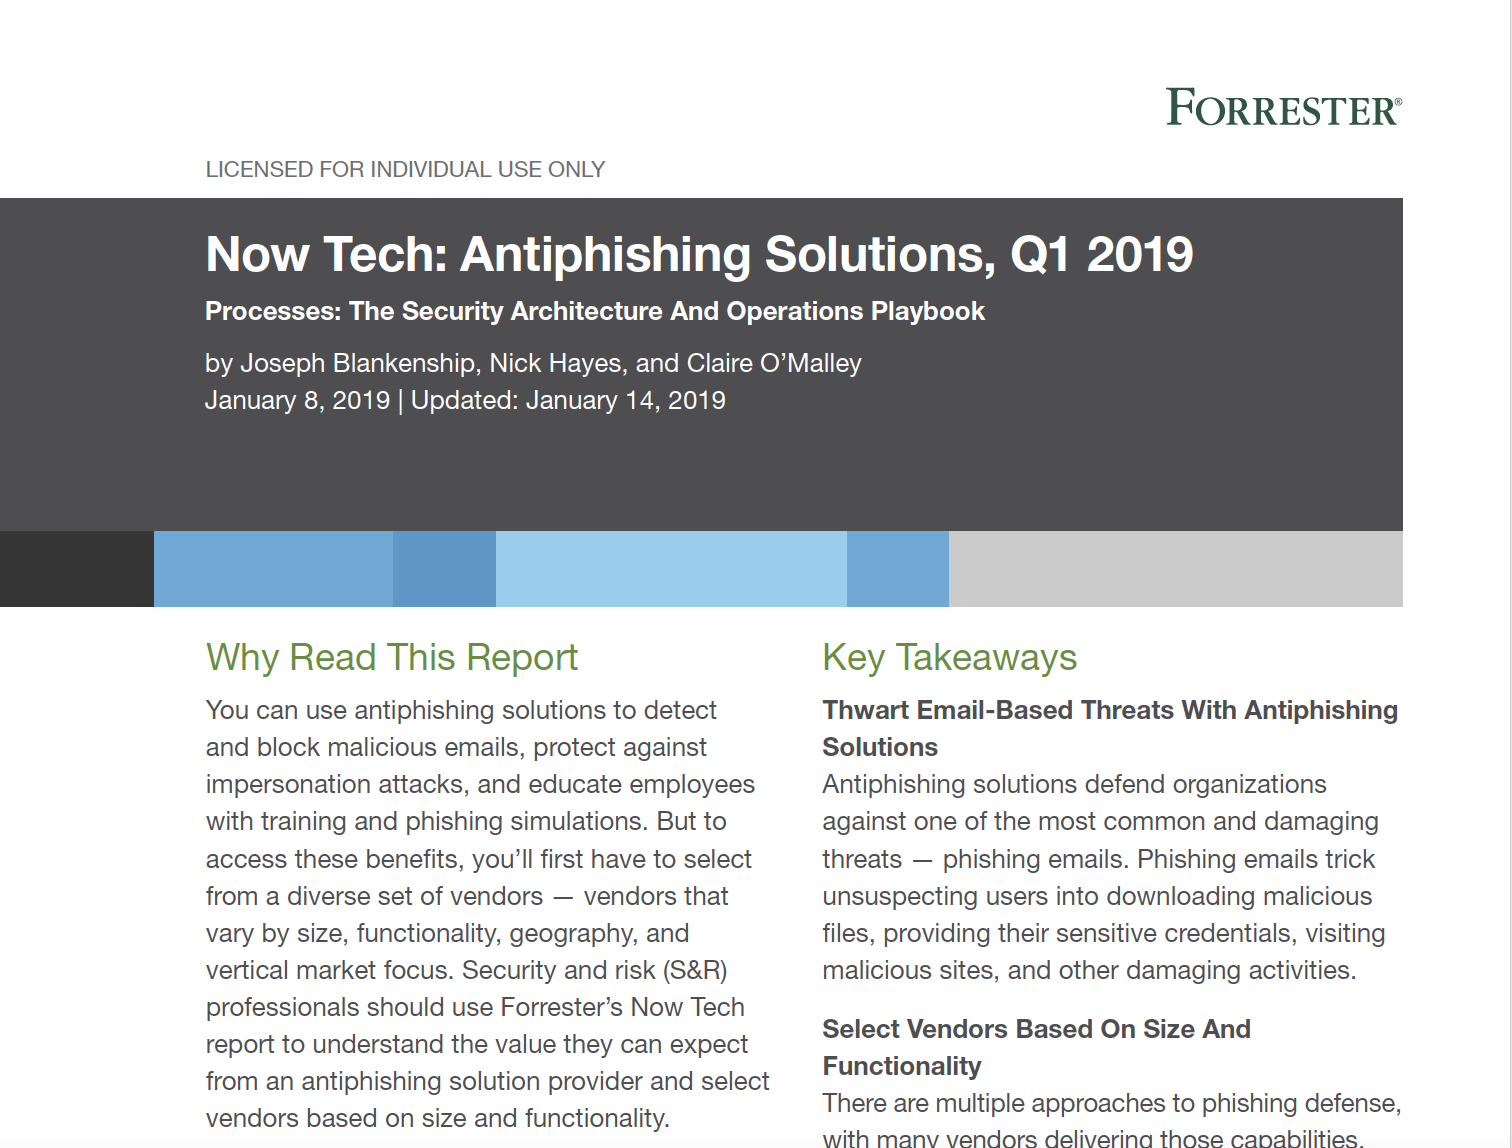 Now-Tech-Antiphishing-Forrester.png